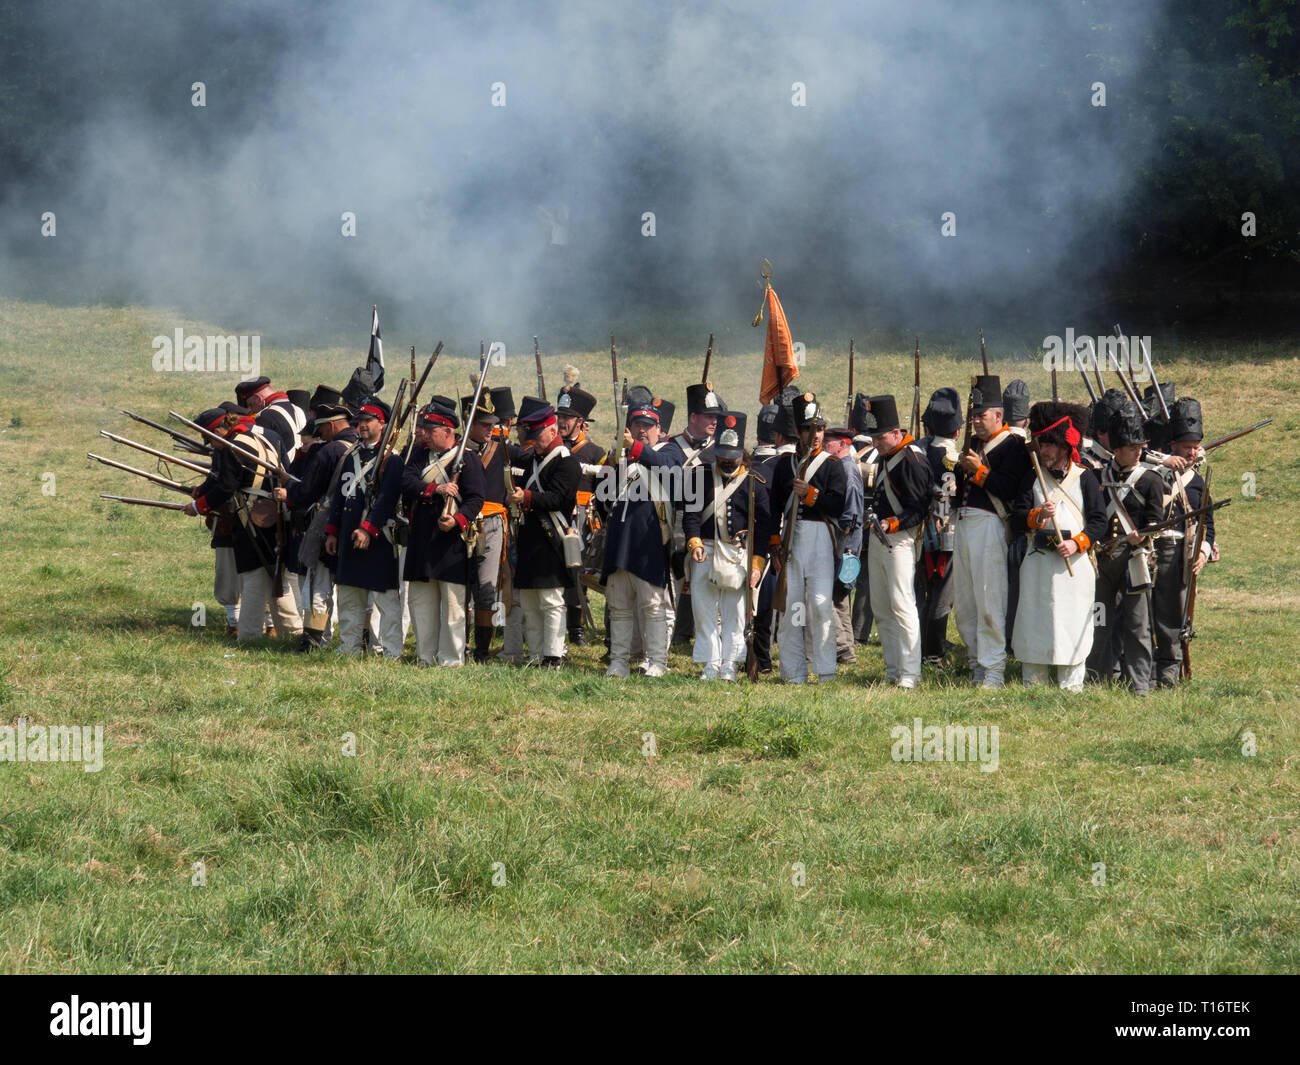 Waterloo, Belgium - June 18 2017: Dutch troops stand in a square formation as a defense against a cavalry charge during the re-enactment of the battle - Stock Image